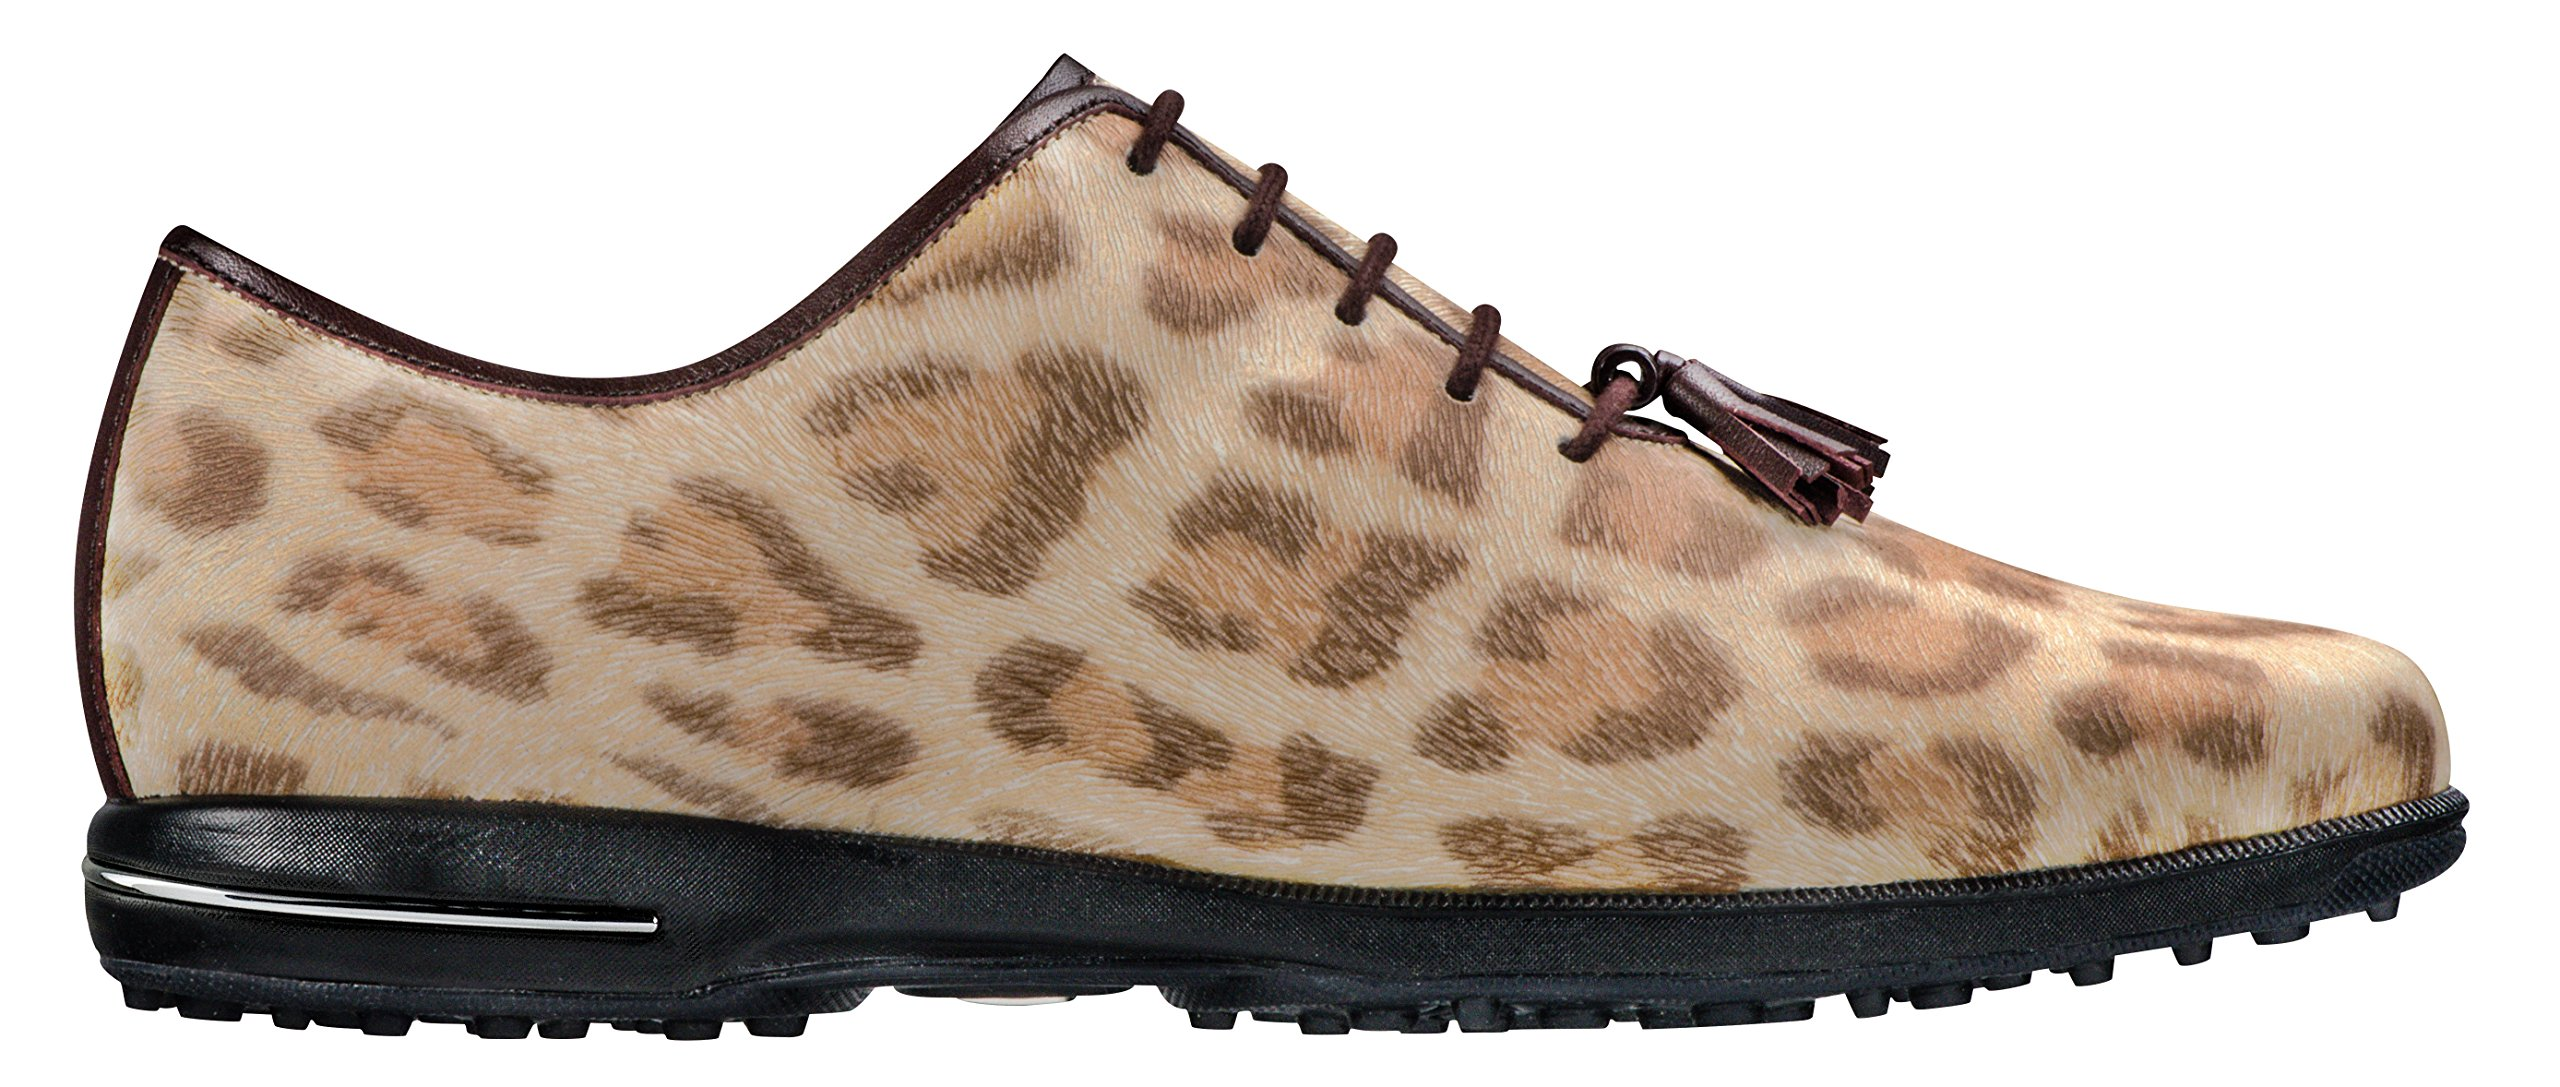 FootJoy Women's Tailored Collection Spikeless Golf Shoes, Close-Out (7 B(M) US, Cheetah/Dark Brown 91653)